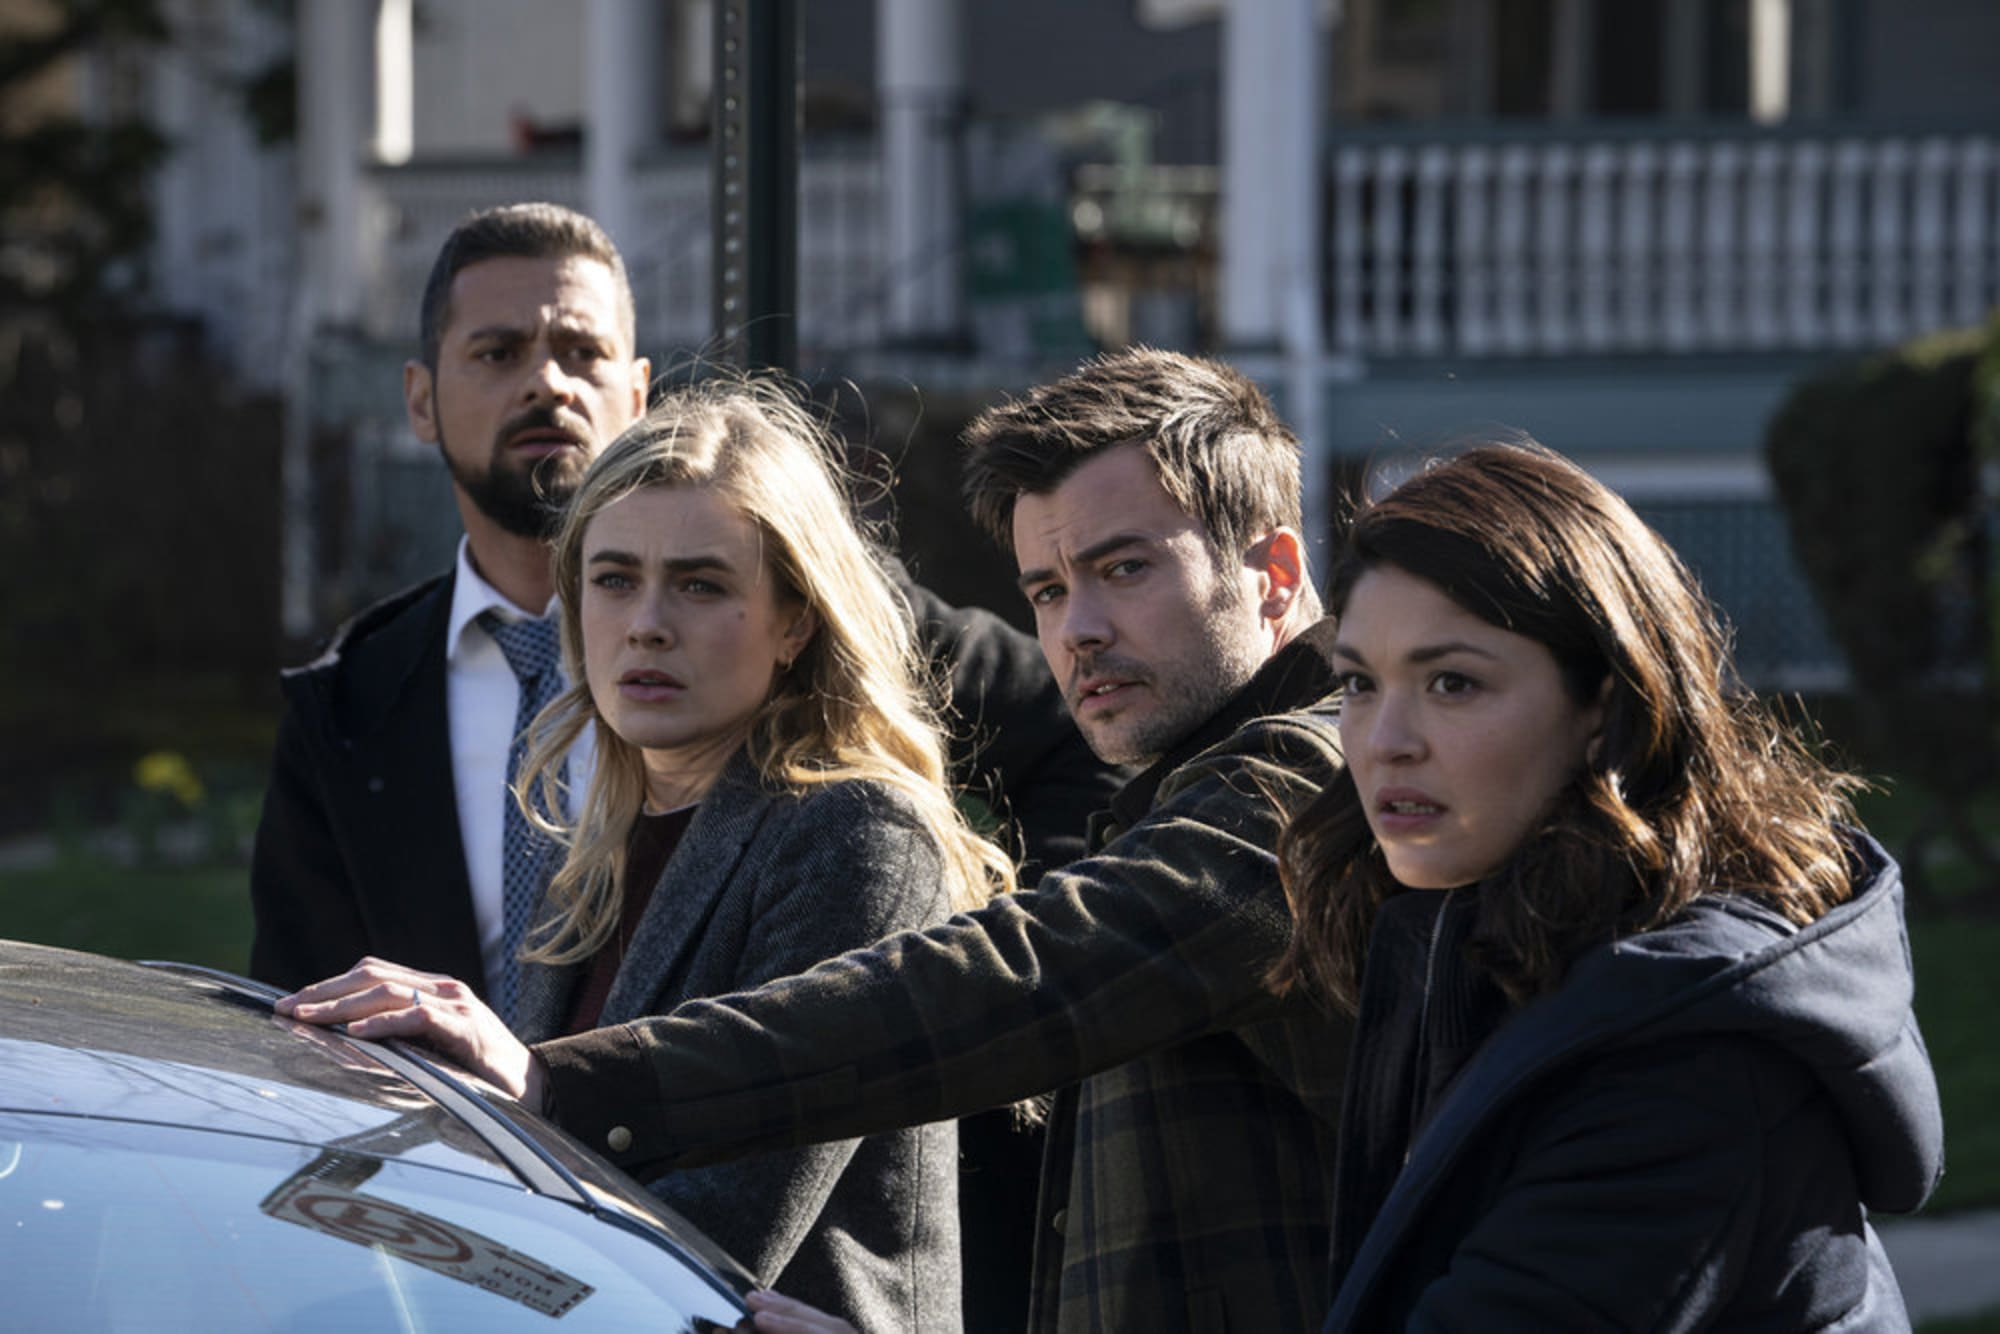 Will there be a Manifest season 4? When is the new season coming out?